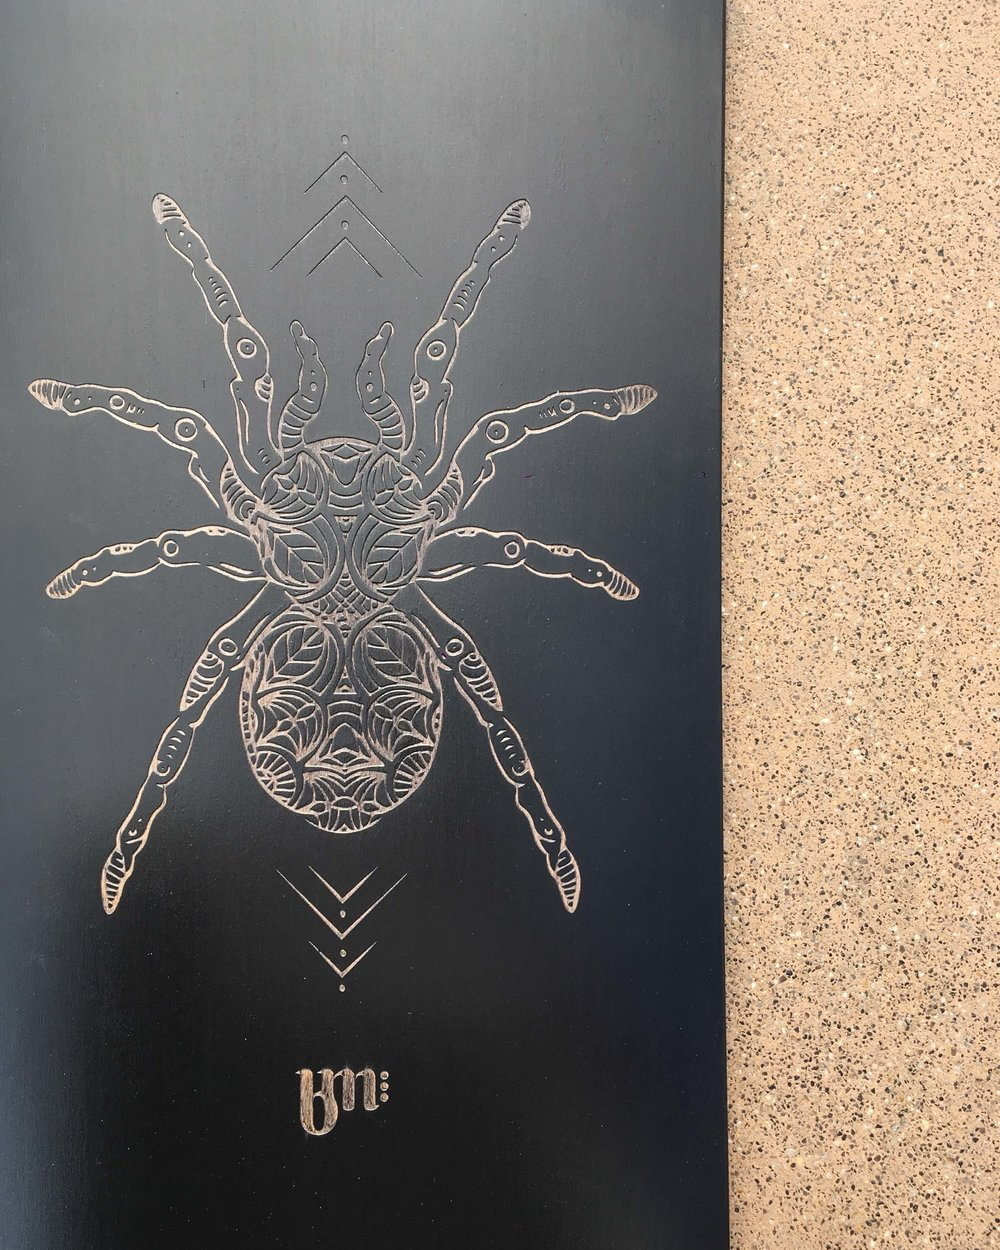 The result of the laser etching on a longboard